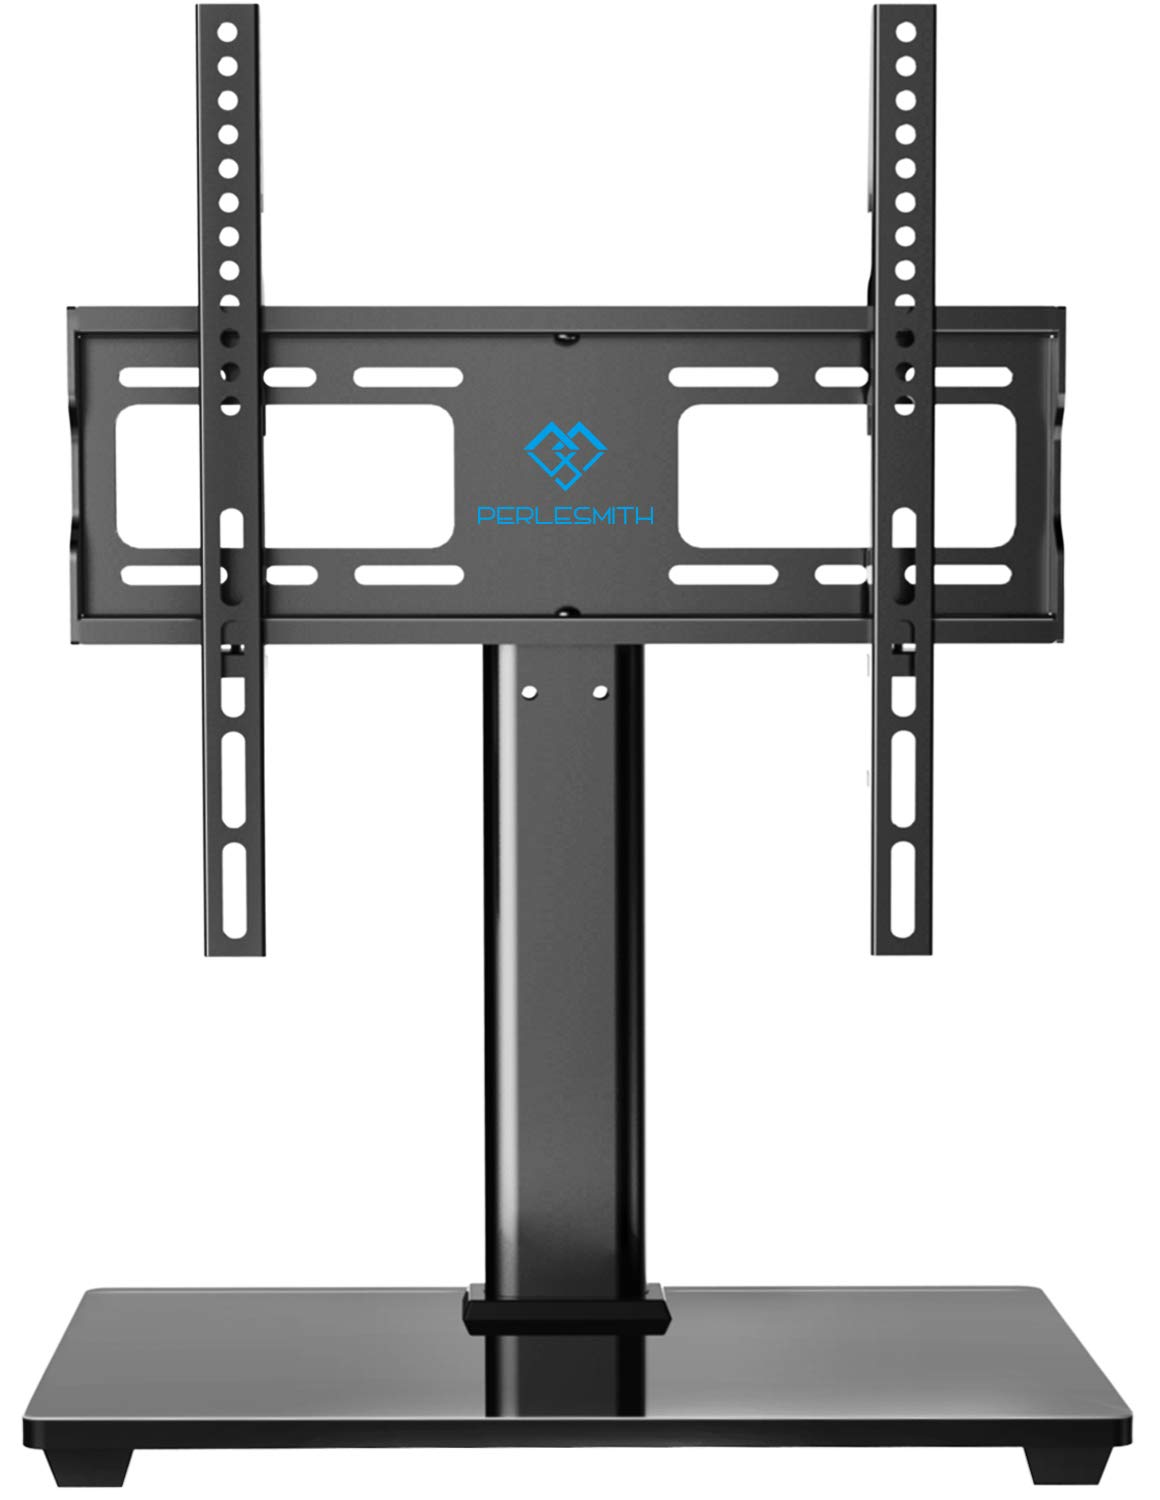 PERLESMITH Swivel Universal TV Stand / Base – Table Top TV Stand for 32-55 inch LCD LED TVs – Height Adjustable TV Mount…